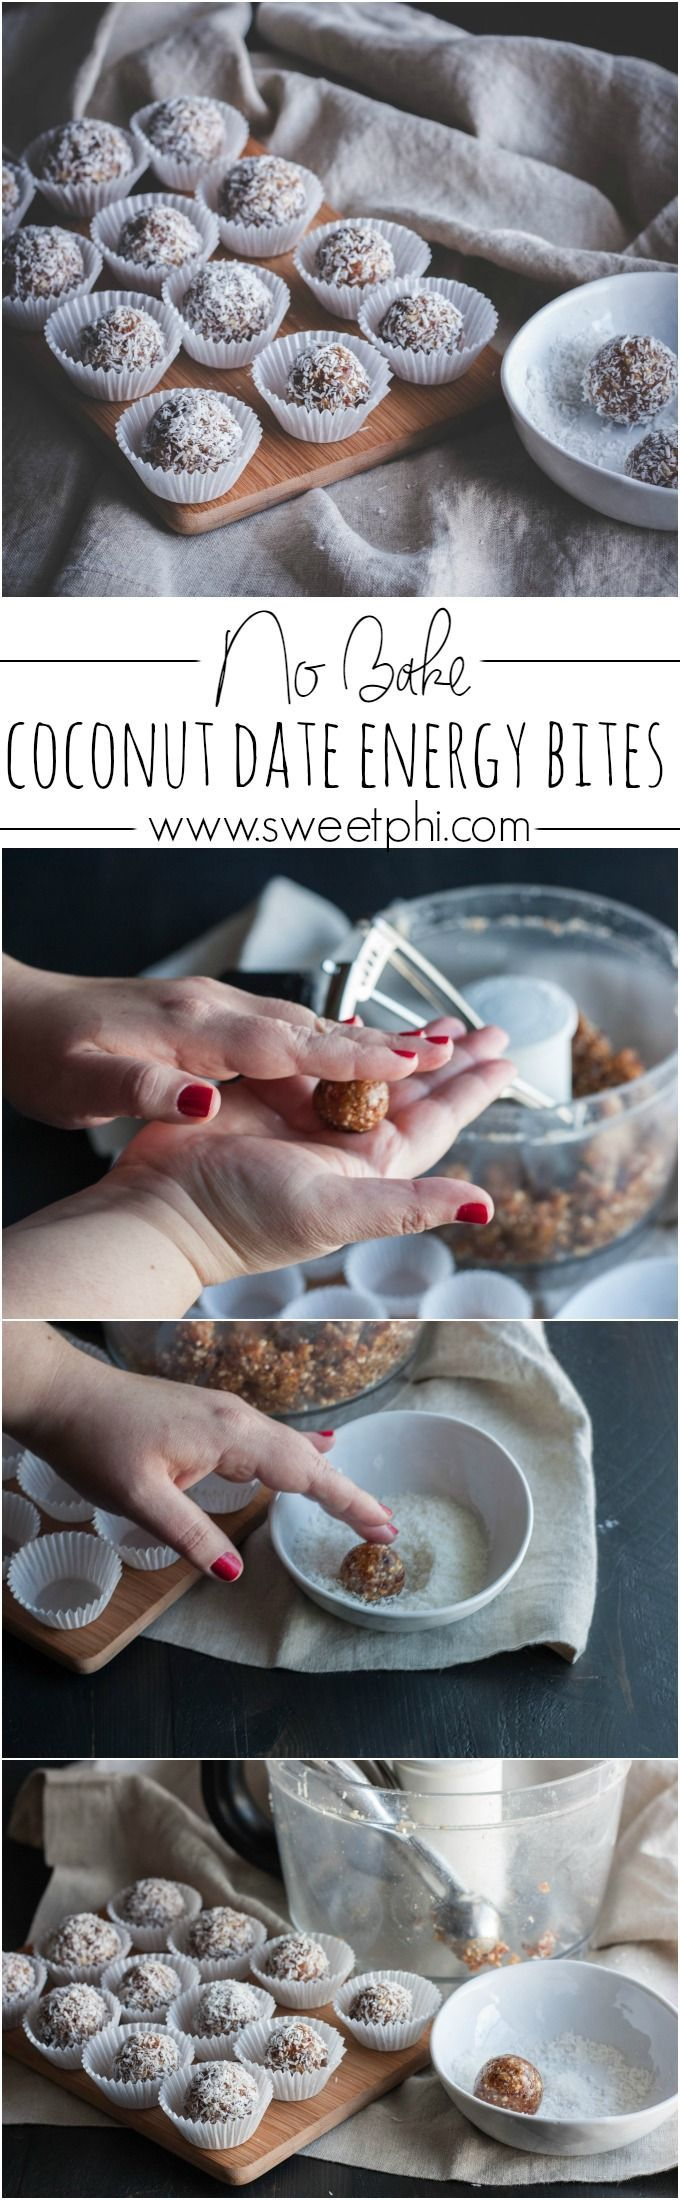 No bake coconut date energy bites, date energy balls, energy bites, date recipes, recipes with dates, no sugar added dessert, whole30 recipe, gluten free and vegan recipe from Sweetphi